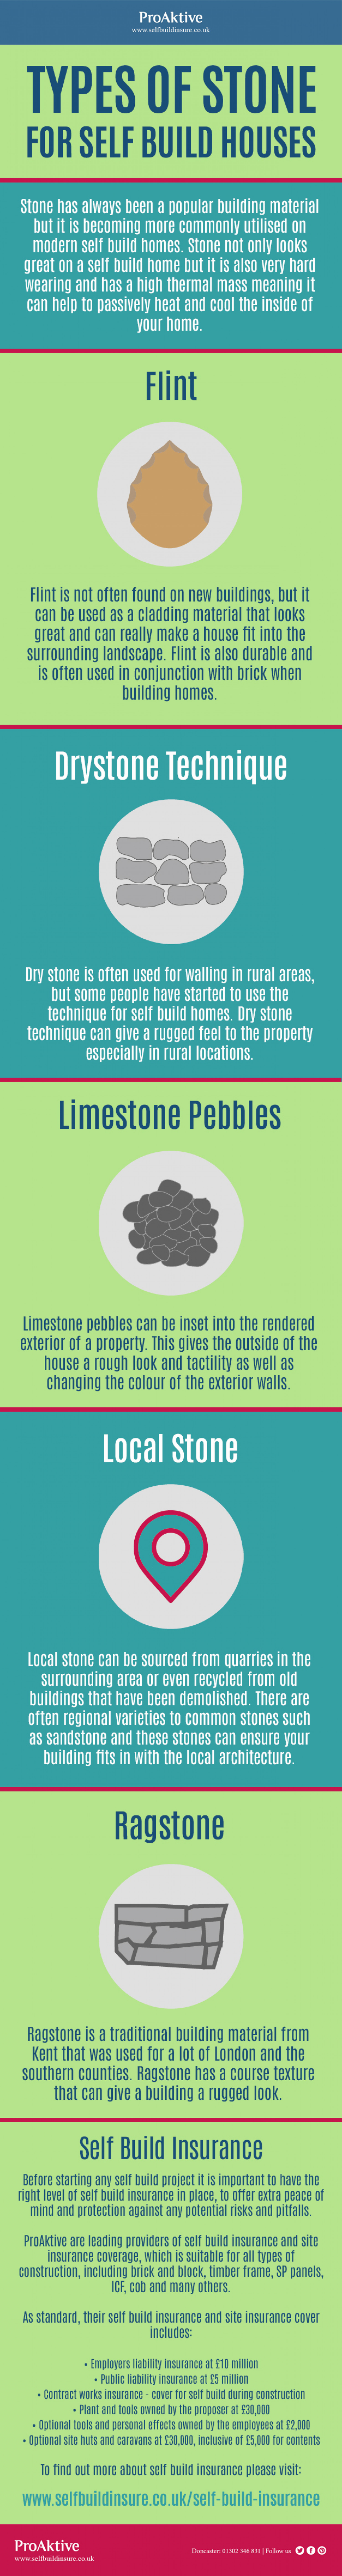 Types of Stone for Self Build Houses Infographic